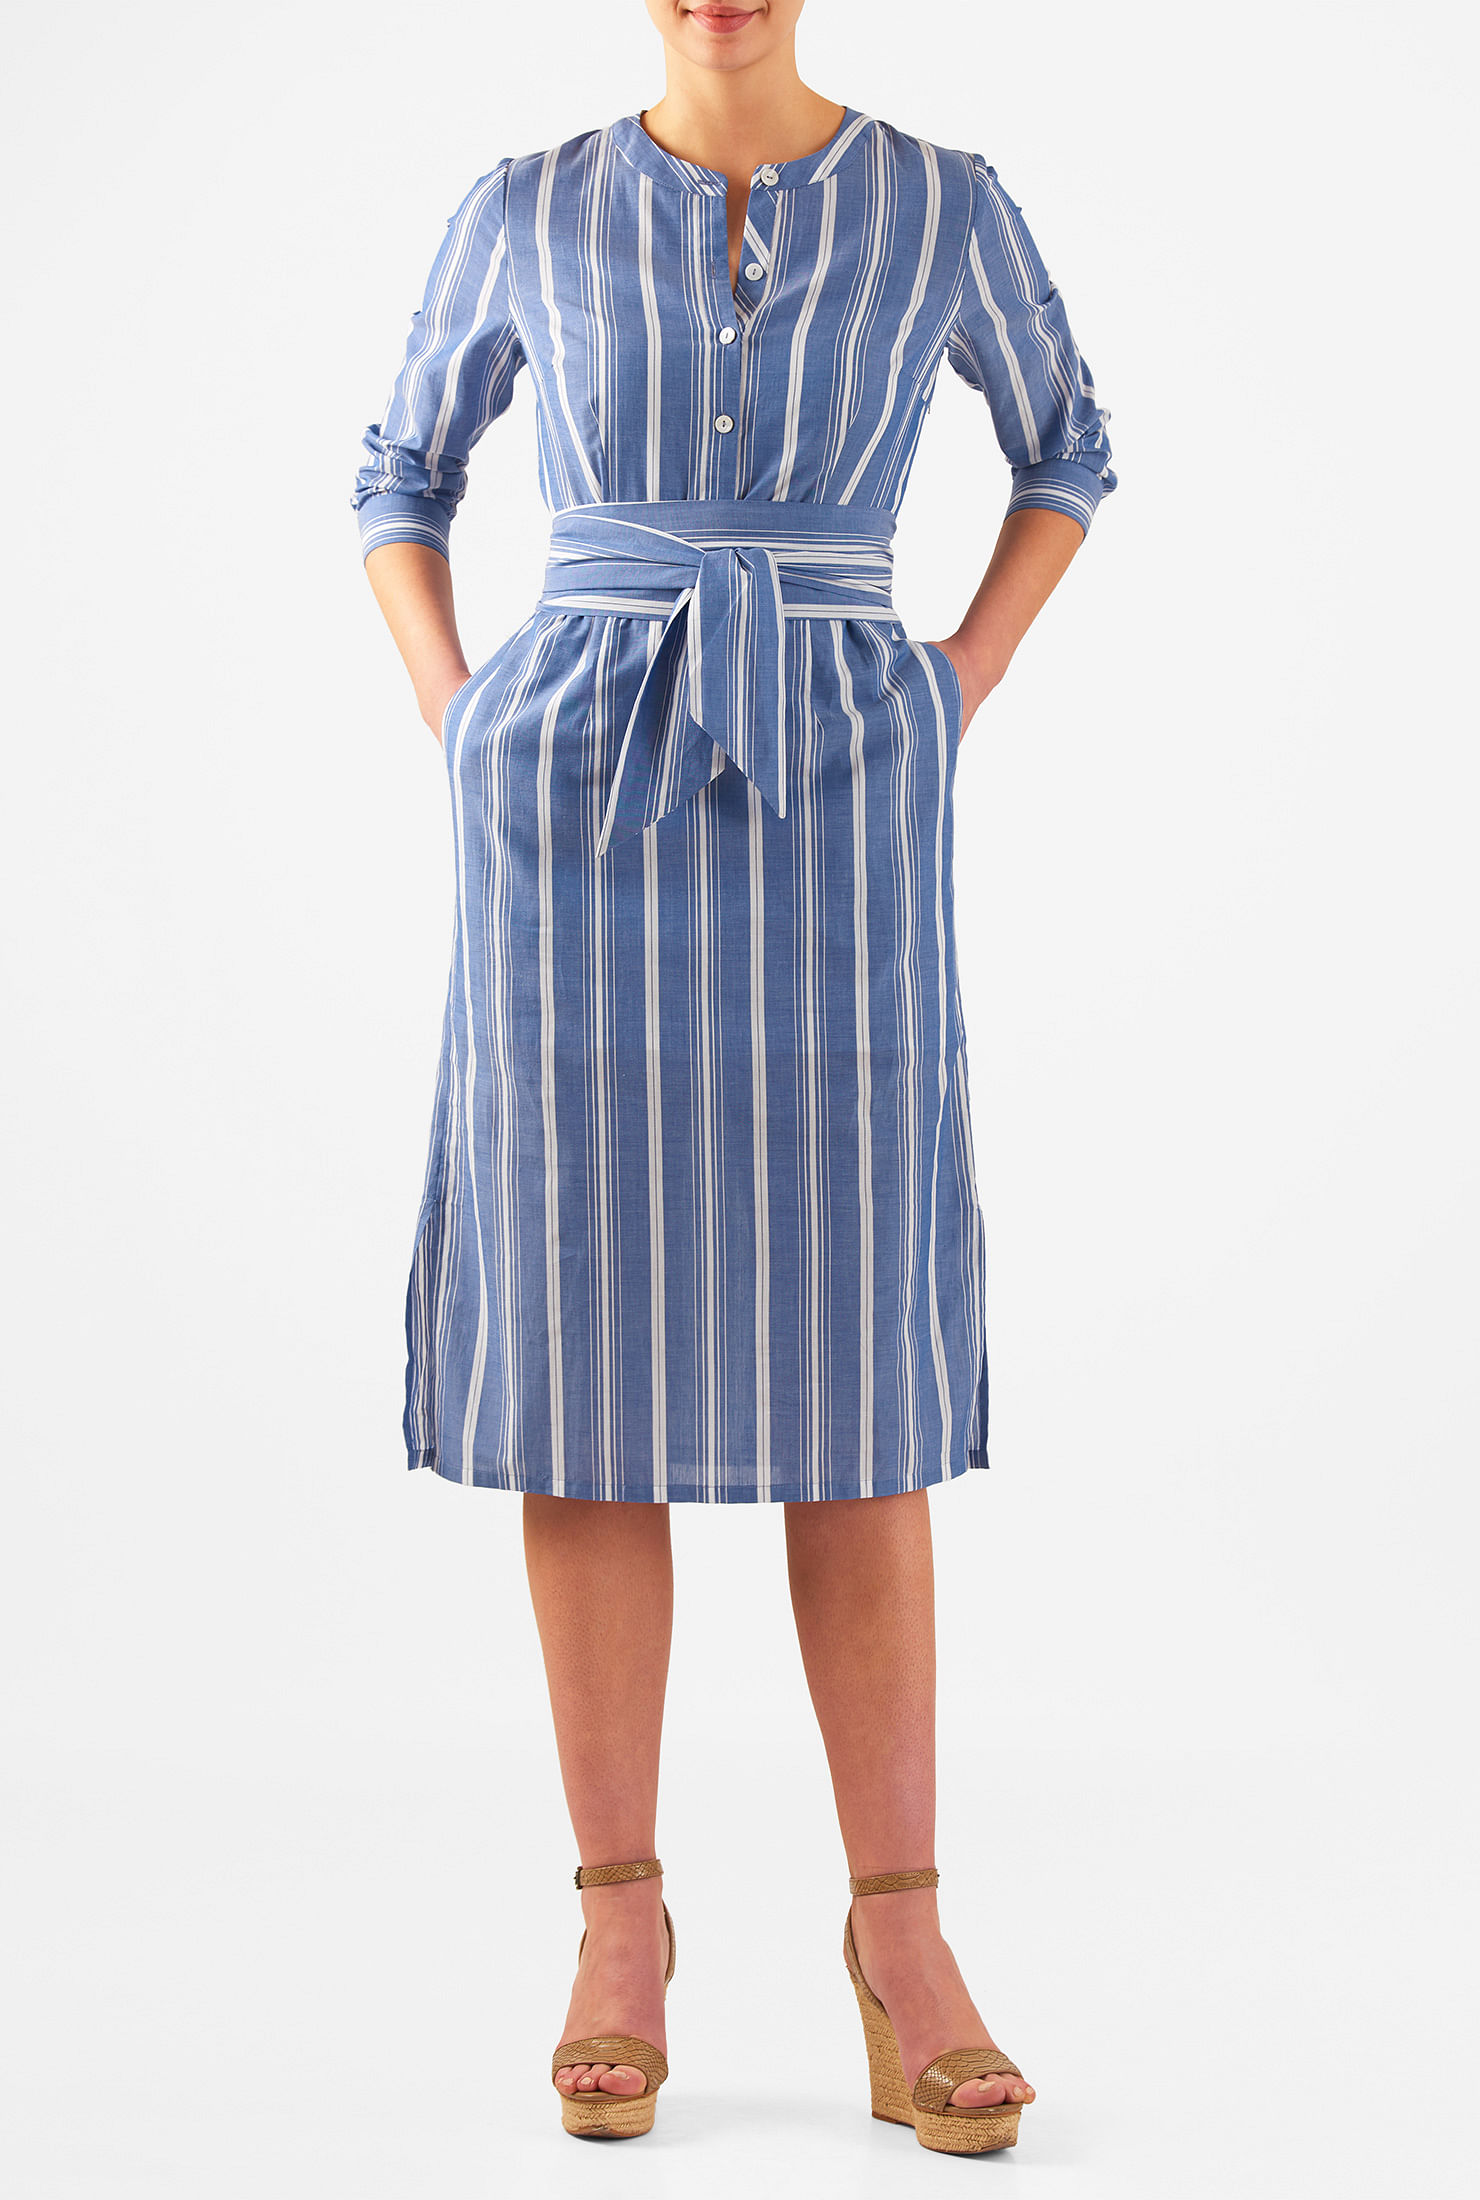 Women 39 s fashion clothing 0 36w and custom for Belted chambray shirt dress